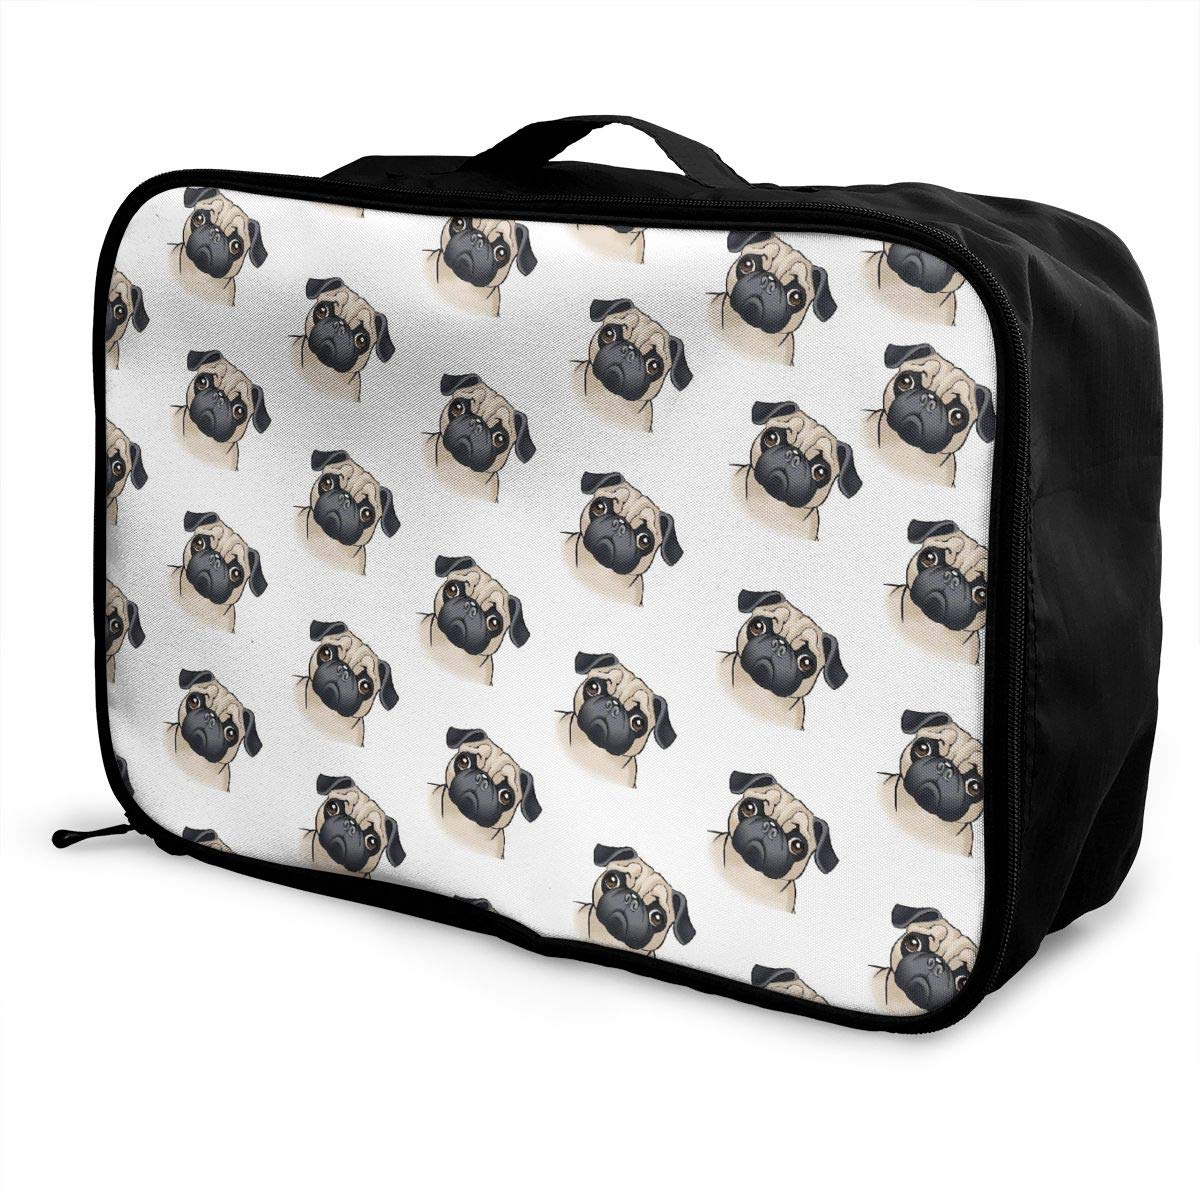 YueLJB Cute Pug Lightweight Large Capacity Portable Luggage Bag Travel Duffel Bag Storage Carry Luggage Duffle Tote Bag